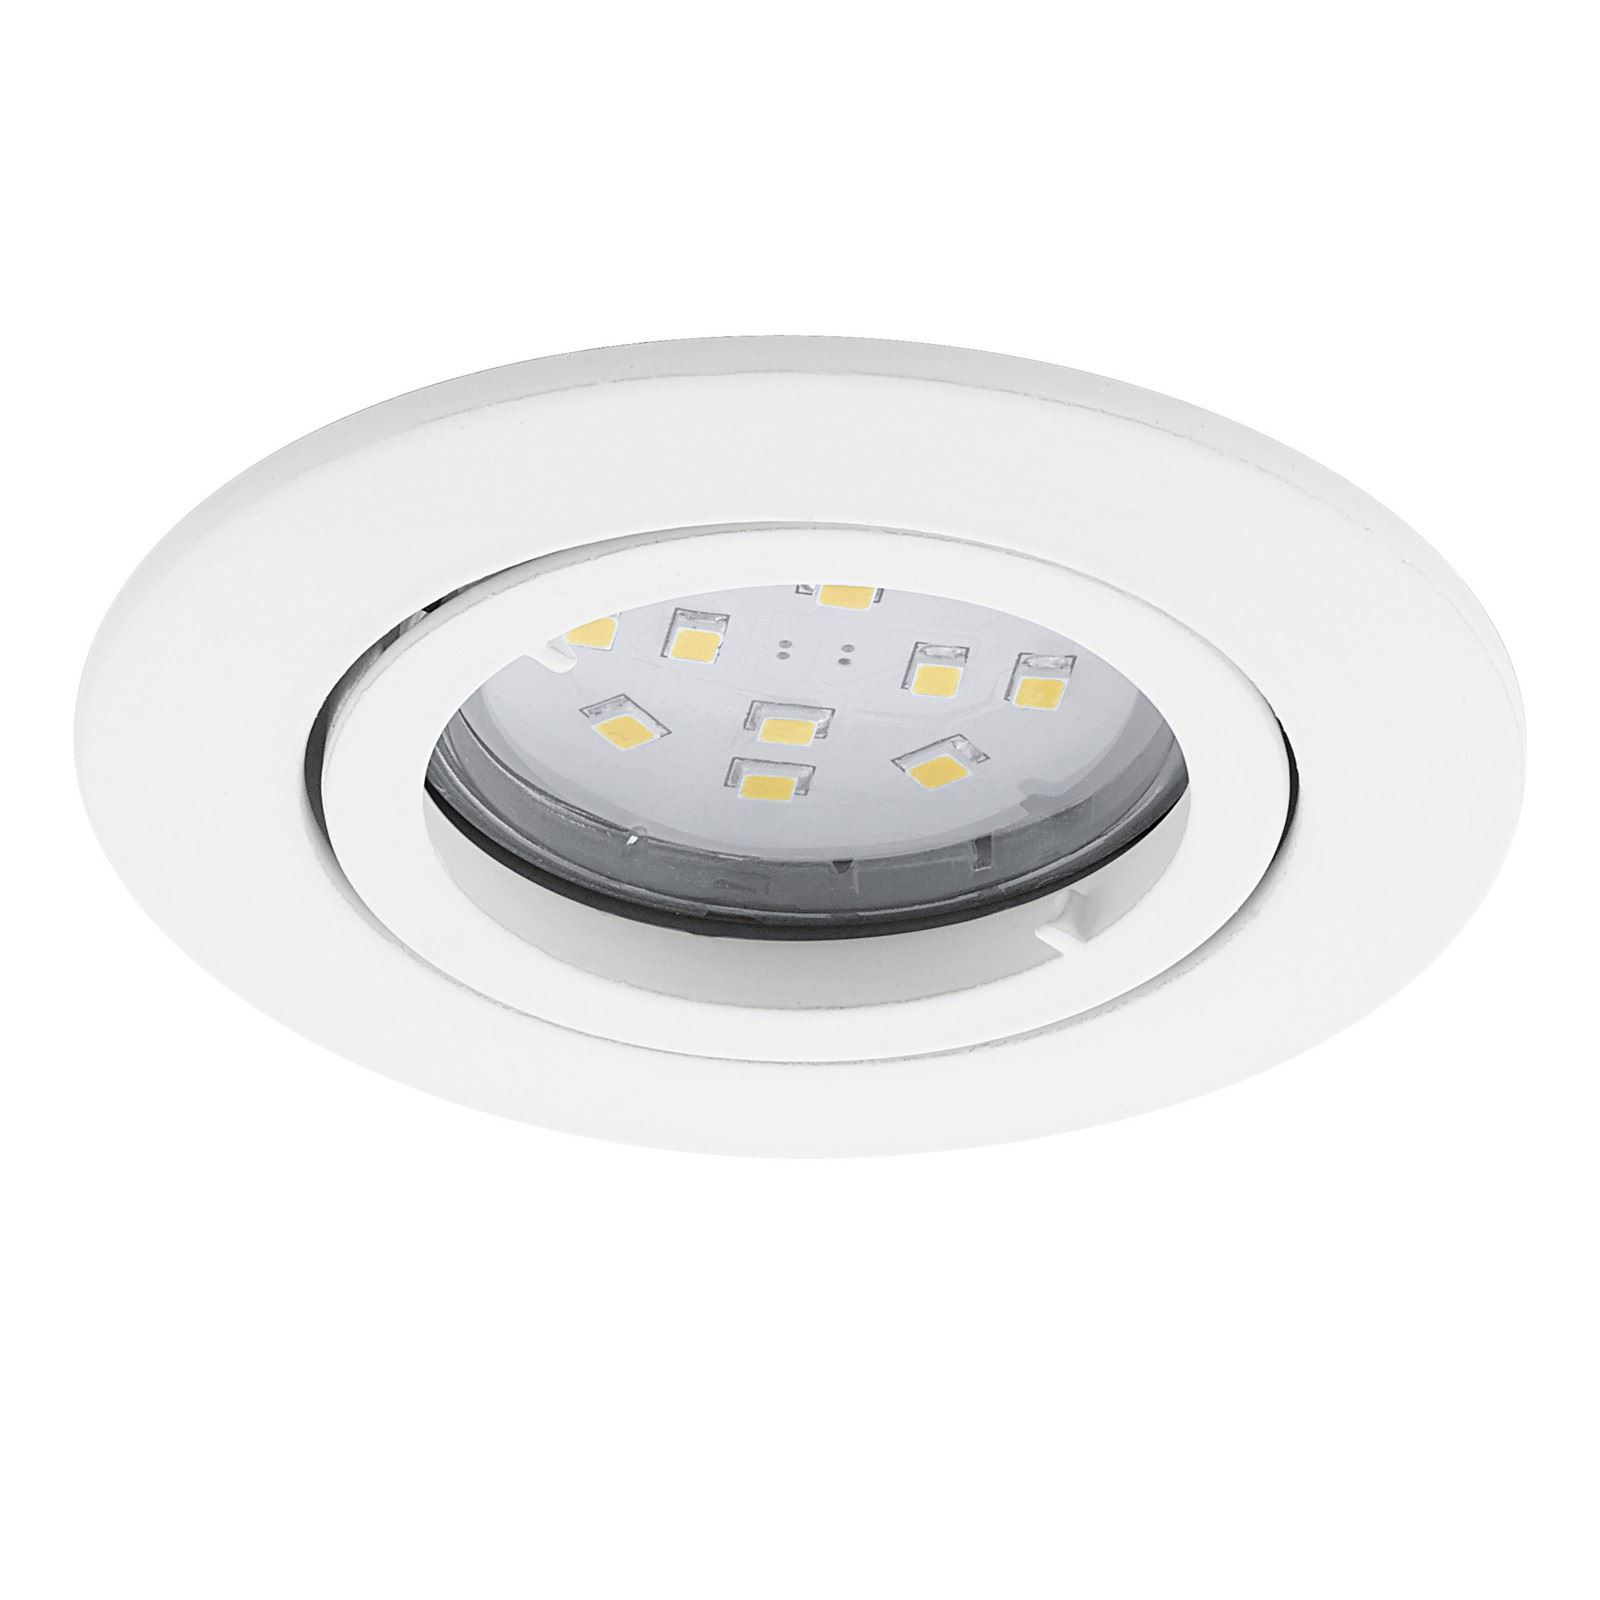 Tedo Modern Recessed Light Gu10-Led 3X 5W Without Switch